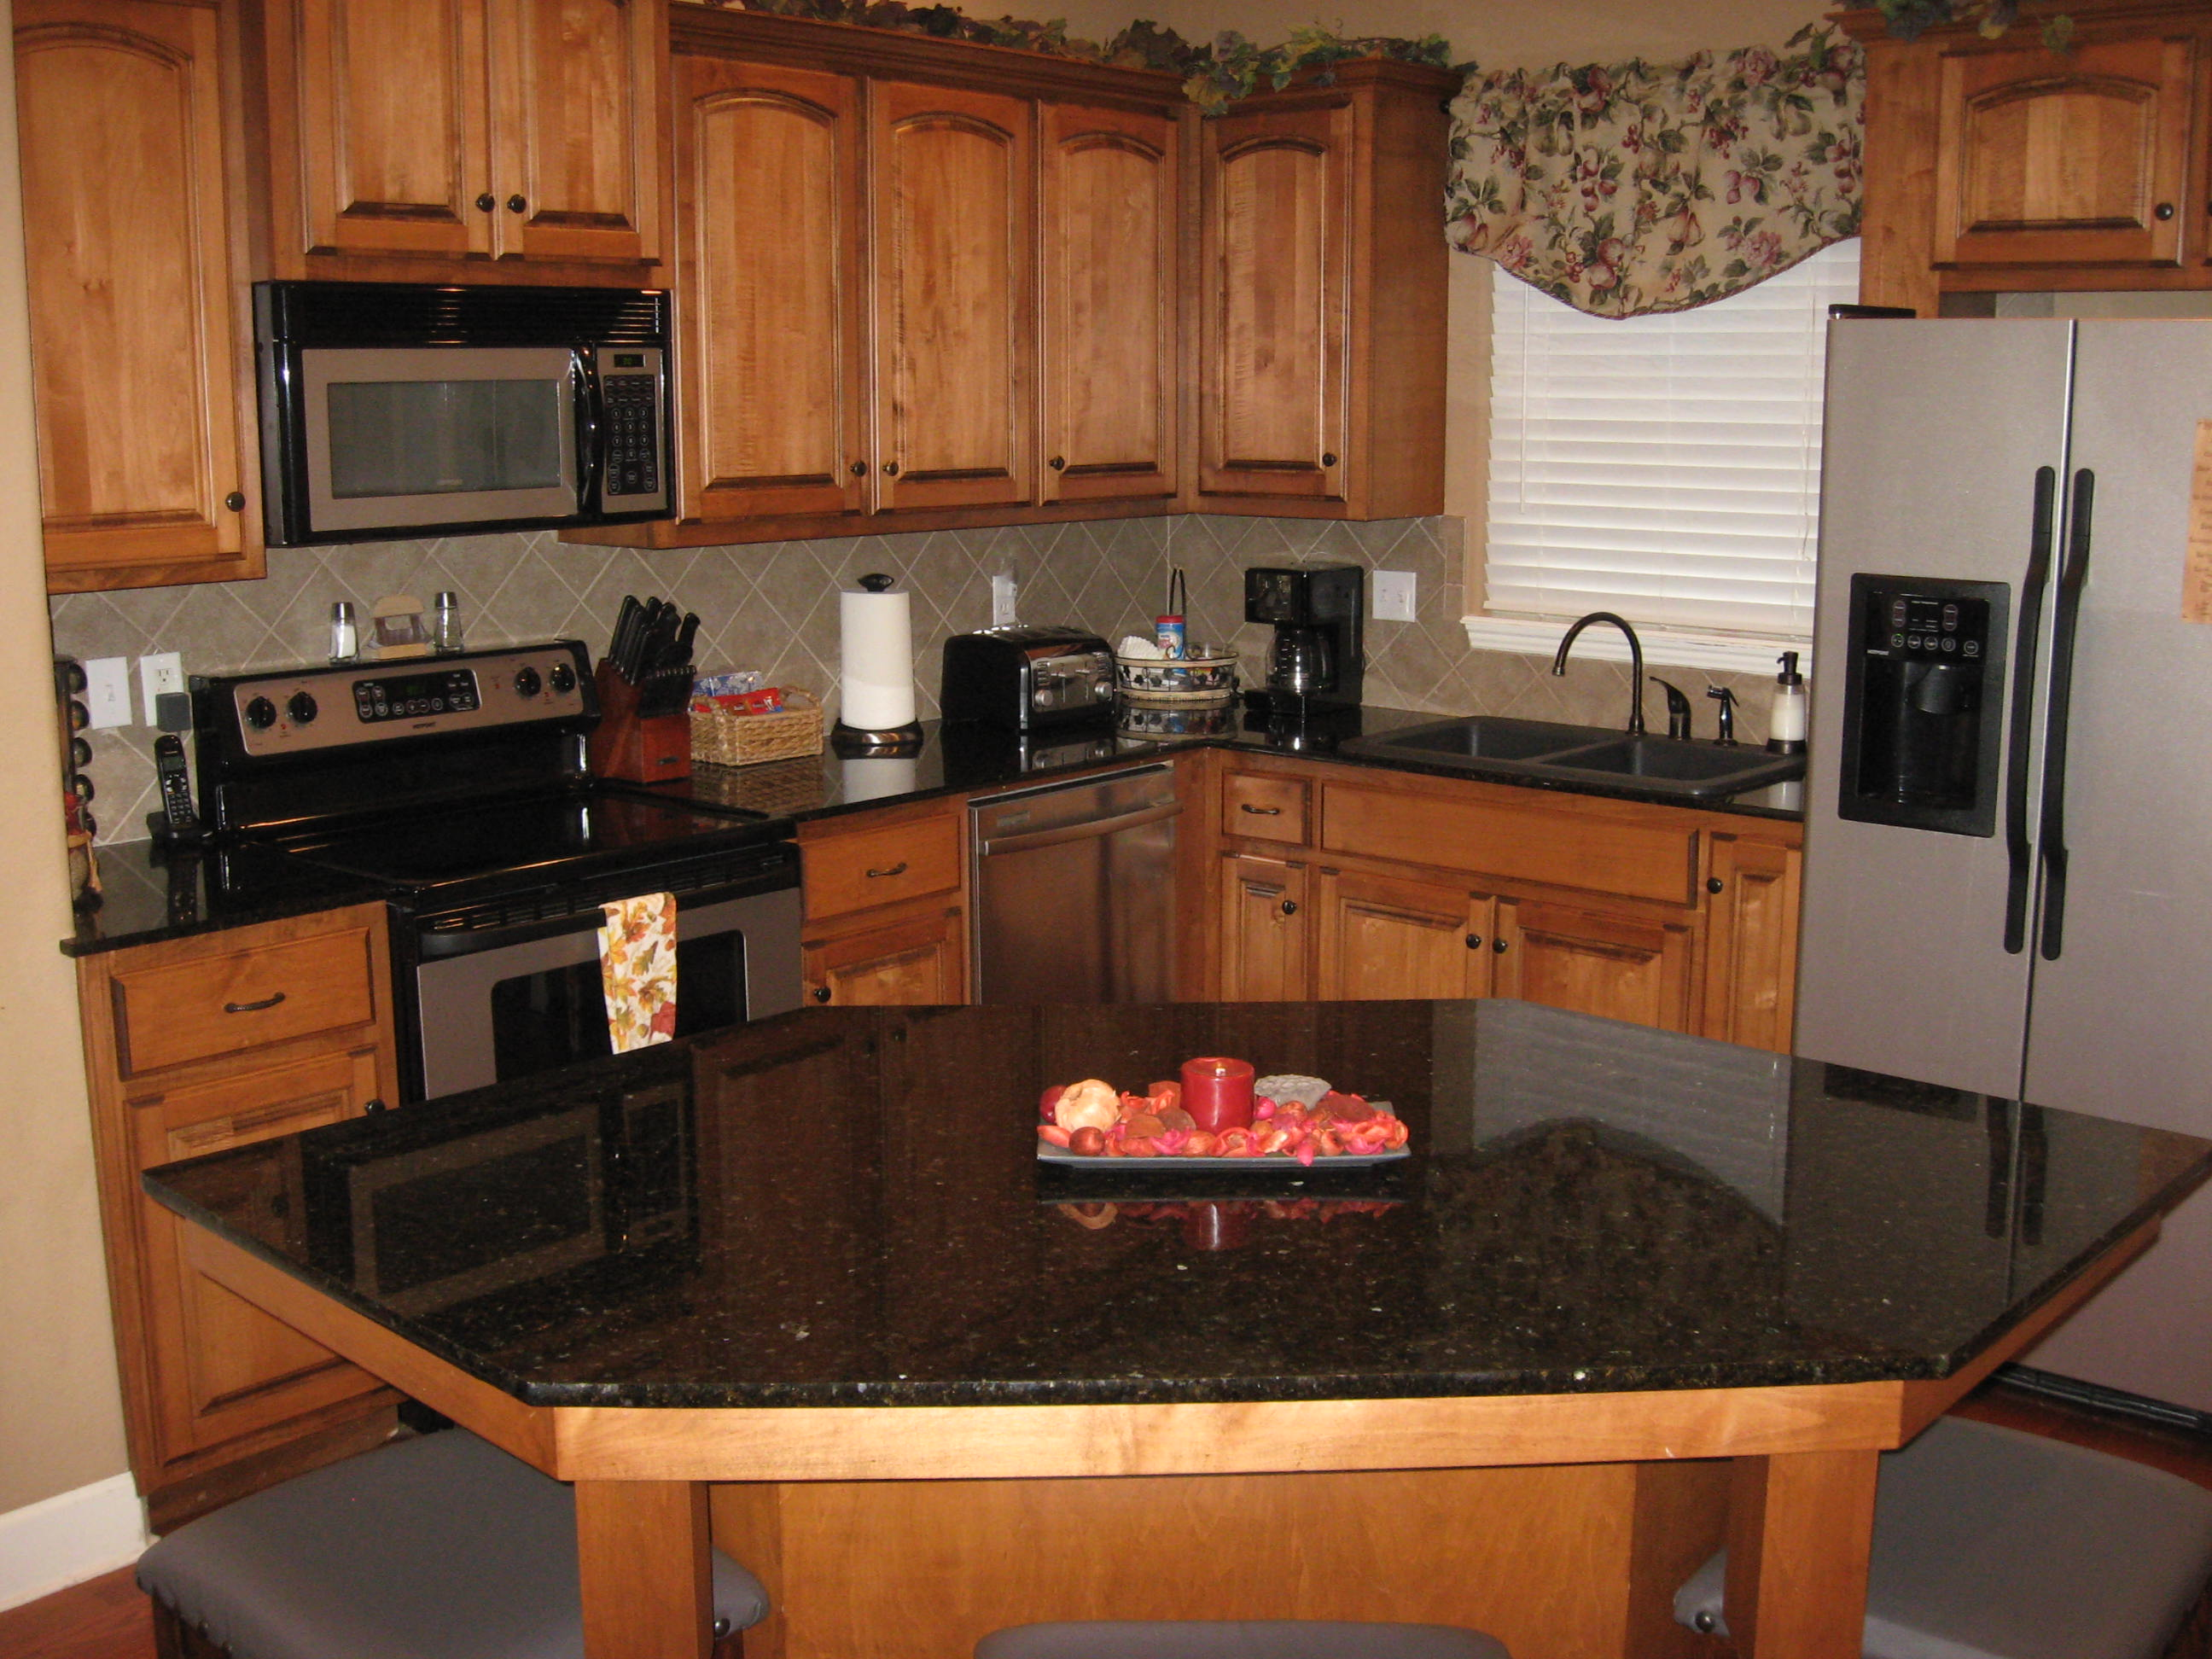 Branson Canyon Vacation Rentals Reunion Rendezvous Kitchen (fully equipped)